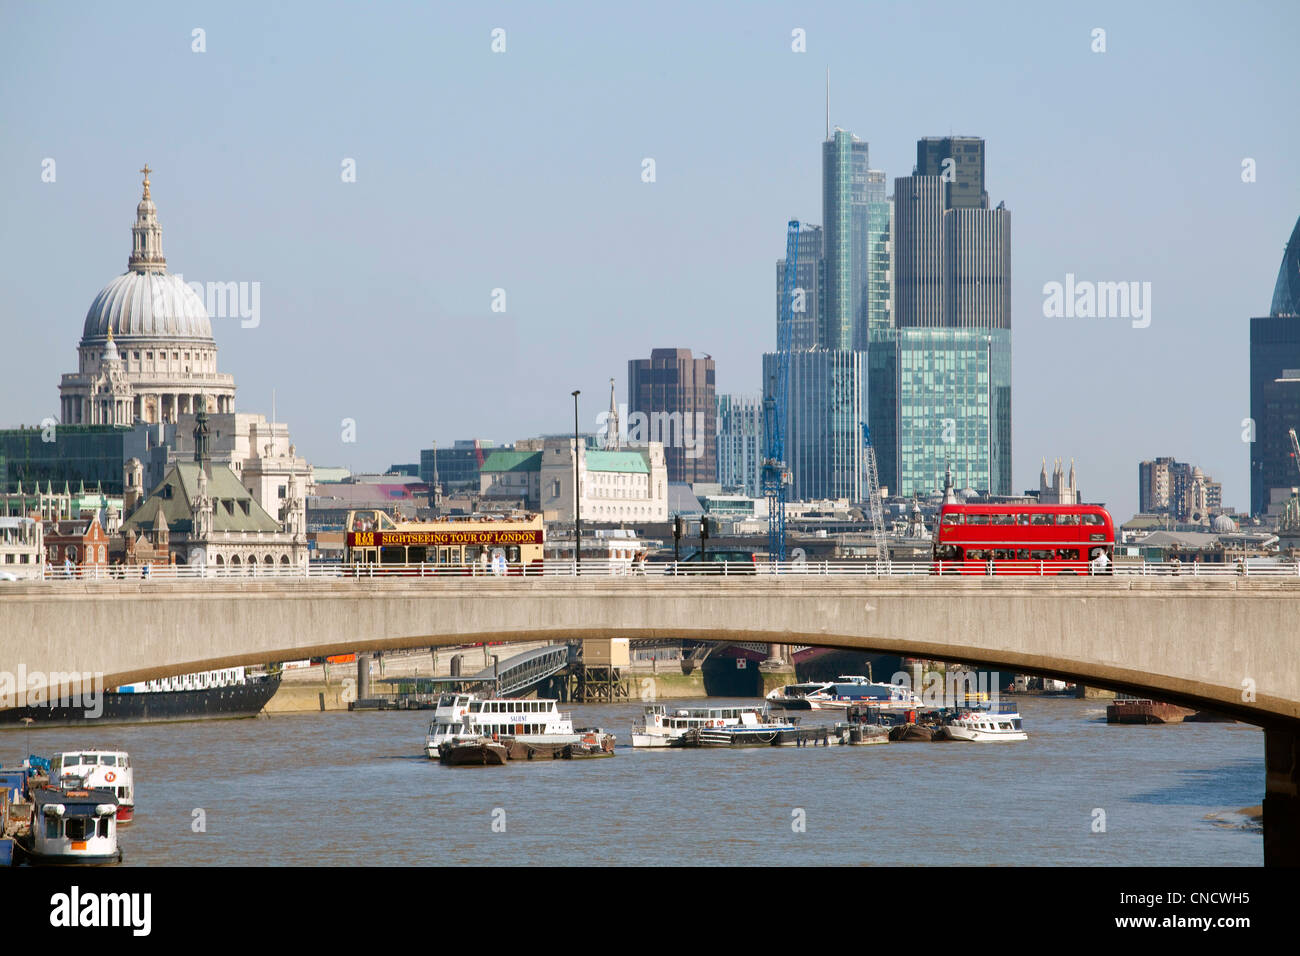 Banks in the City of London and Waterloo Bridge - Stock Image